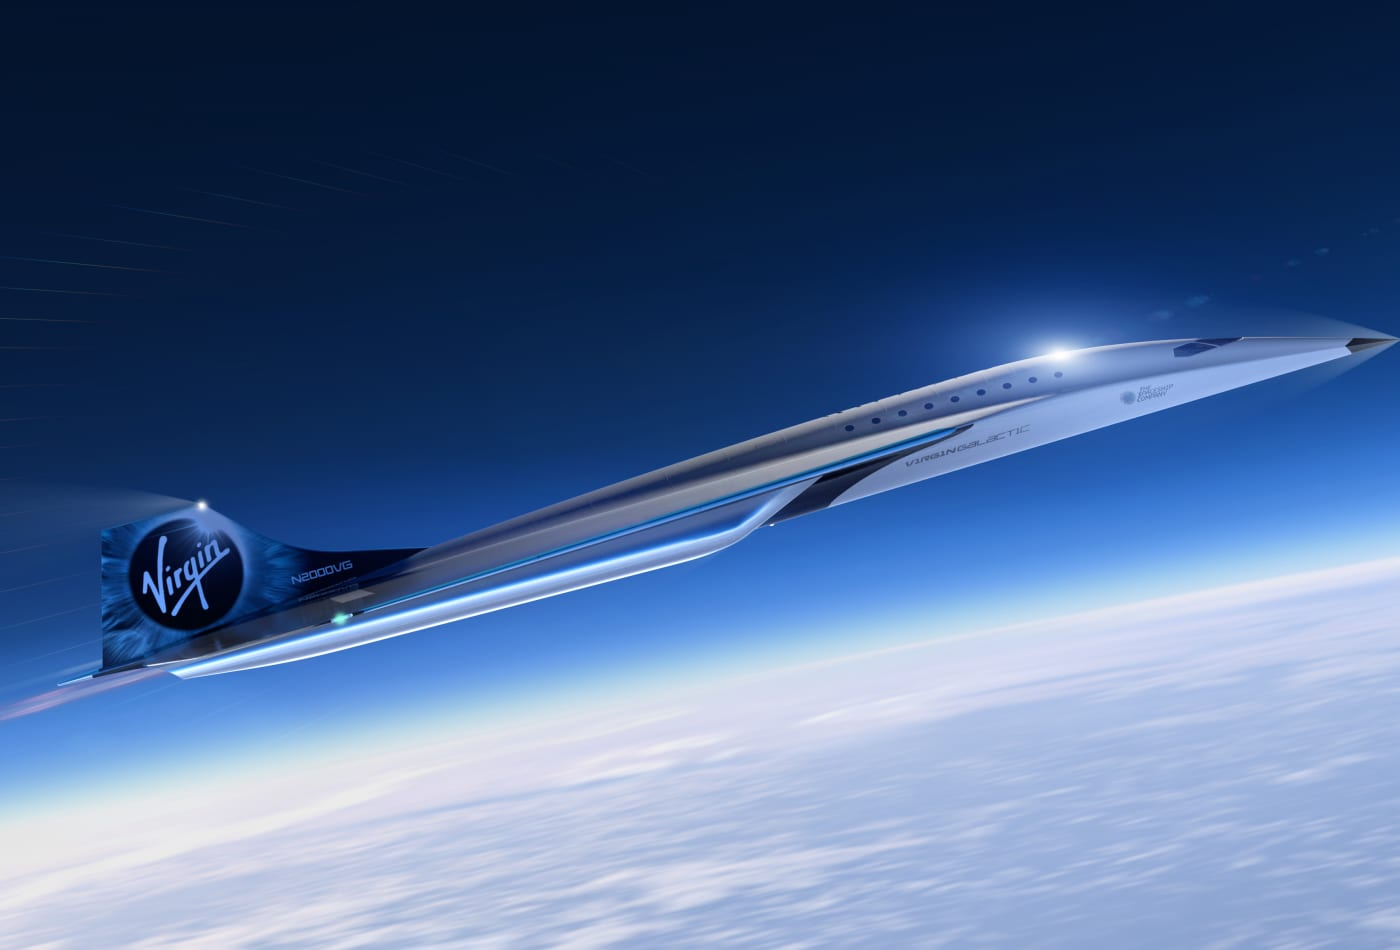 Stocks making the biggest moves midday: Virgin Galactic, Intel, Snap & more